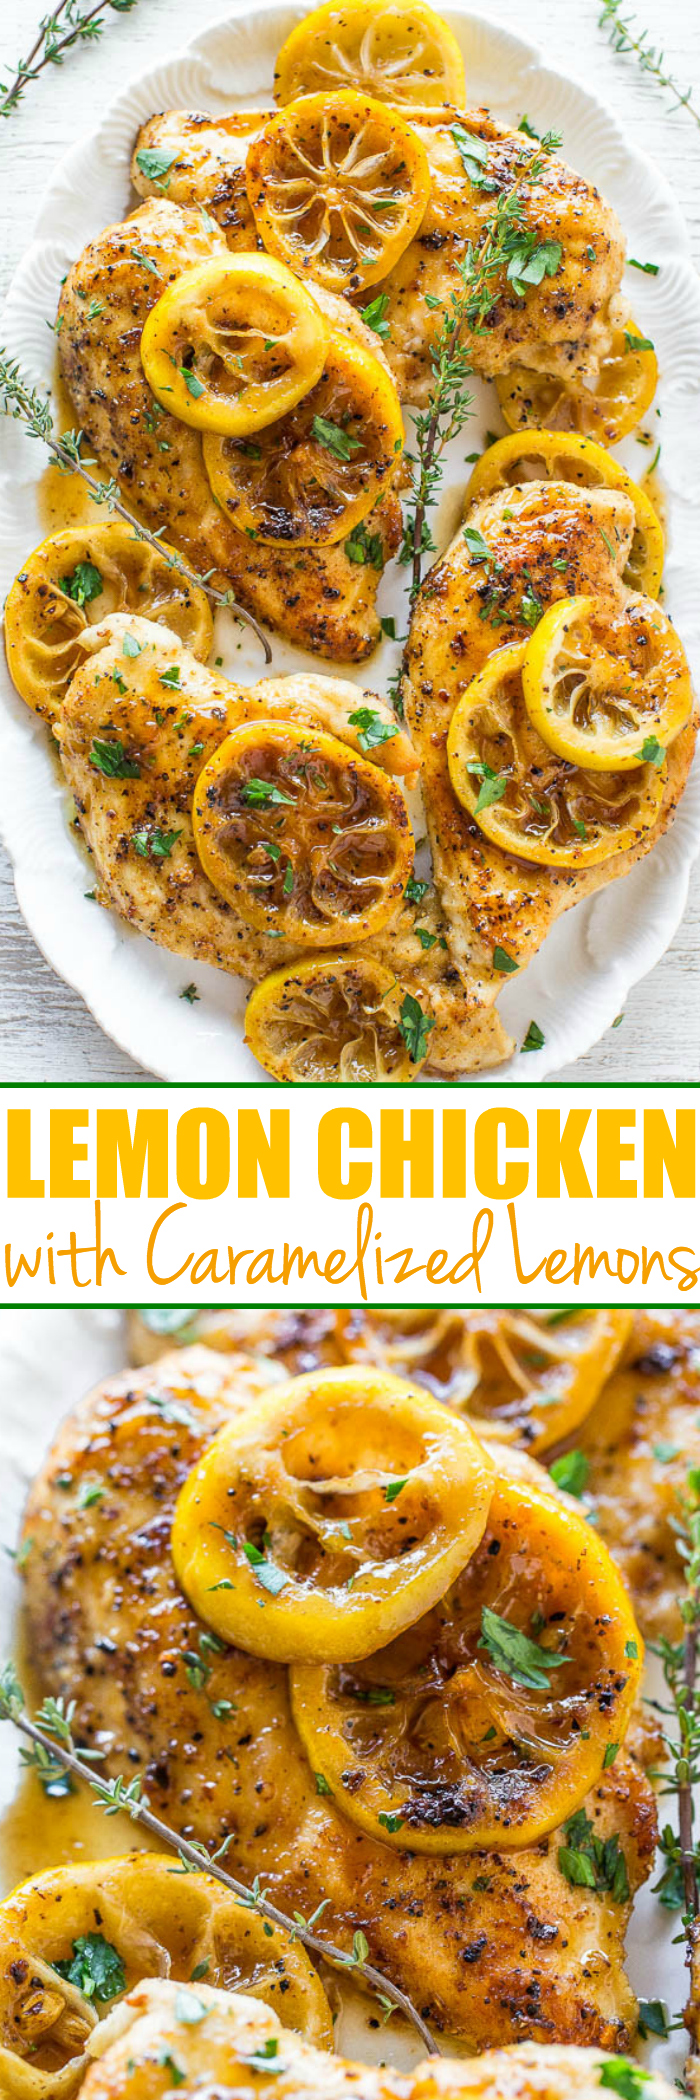 Easy Lemon Pepper Chicken with Caramelized Lemons — If you like lemons you're going to love this very lemony LEMON chicken!! Easy, healthy, ready in 20 minutes, and bursting with bold lemon flavor!!